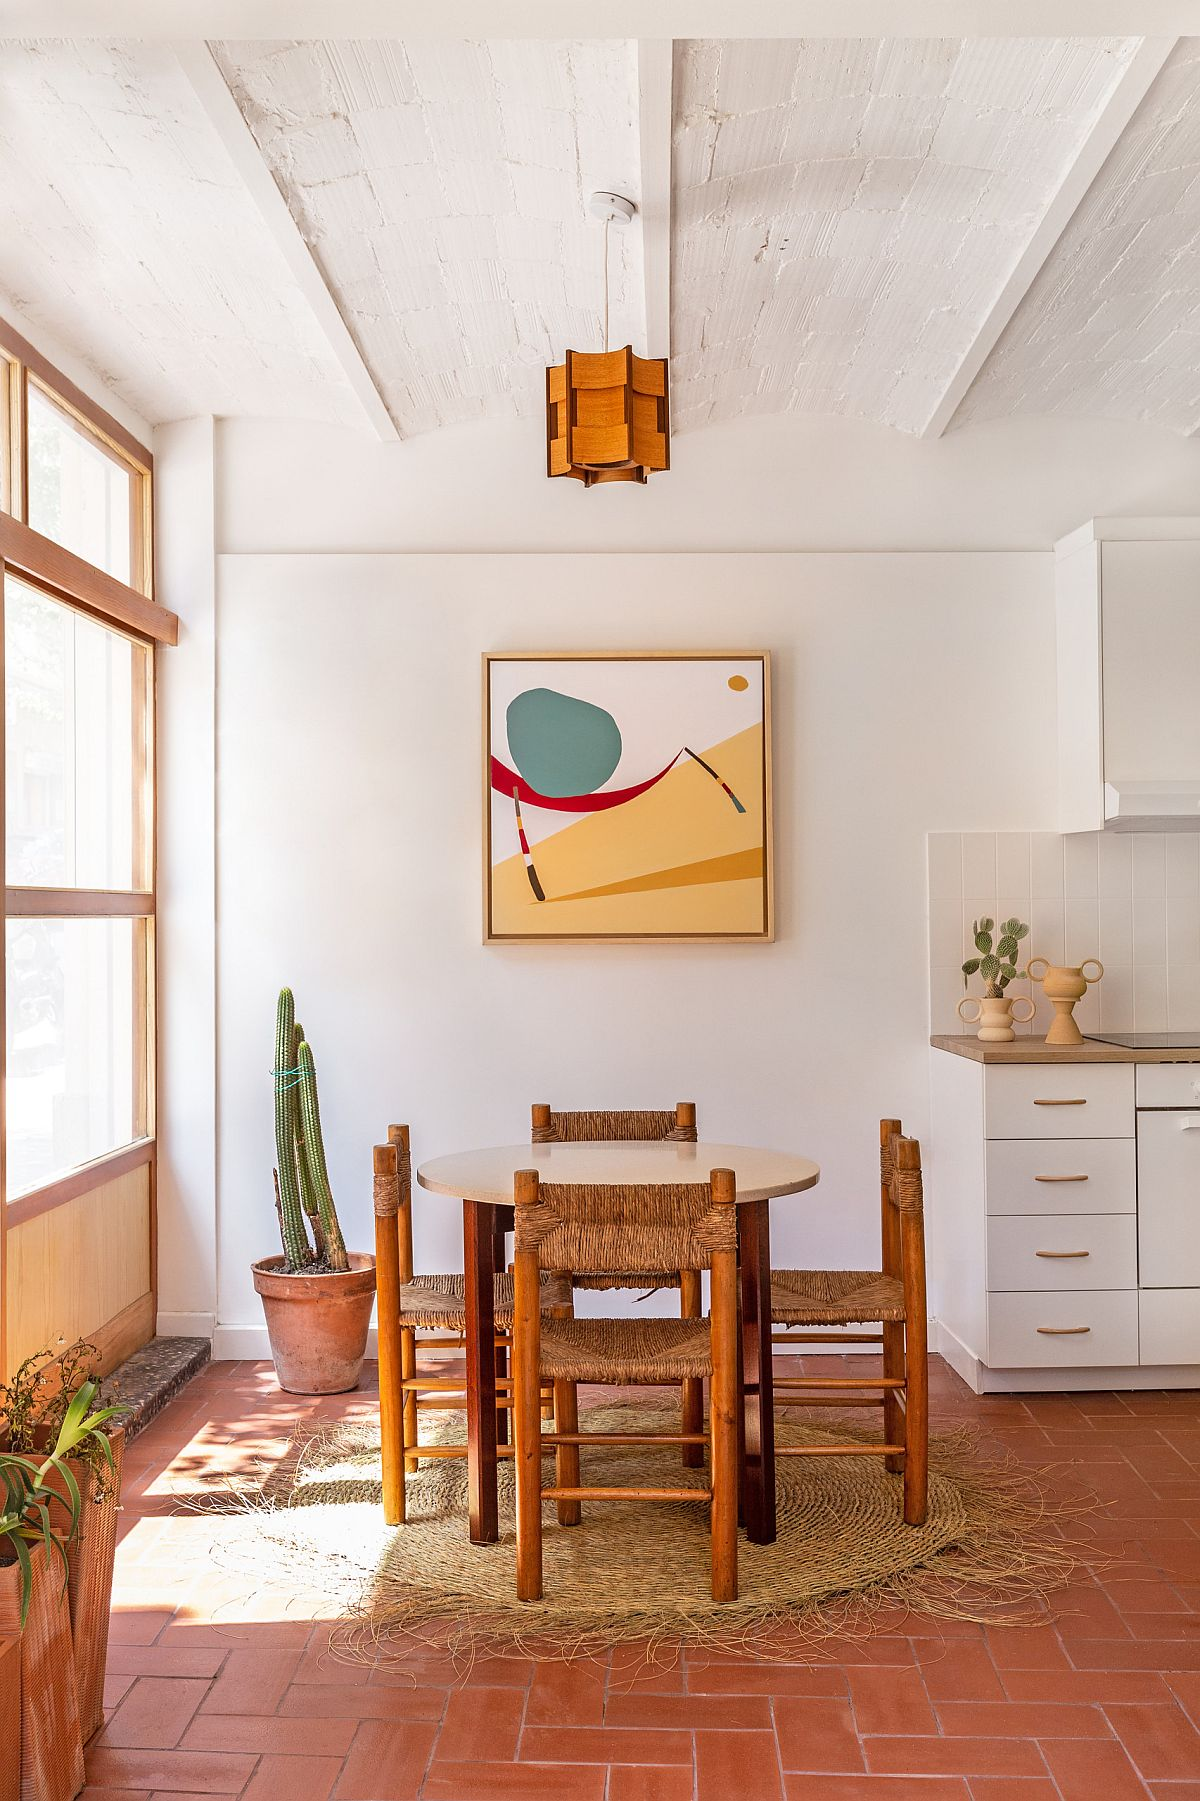 Delightful little dining room with terracotta floor tiles veers more towards modern than Mediterranean